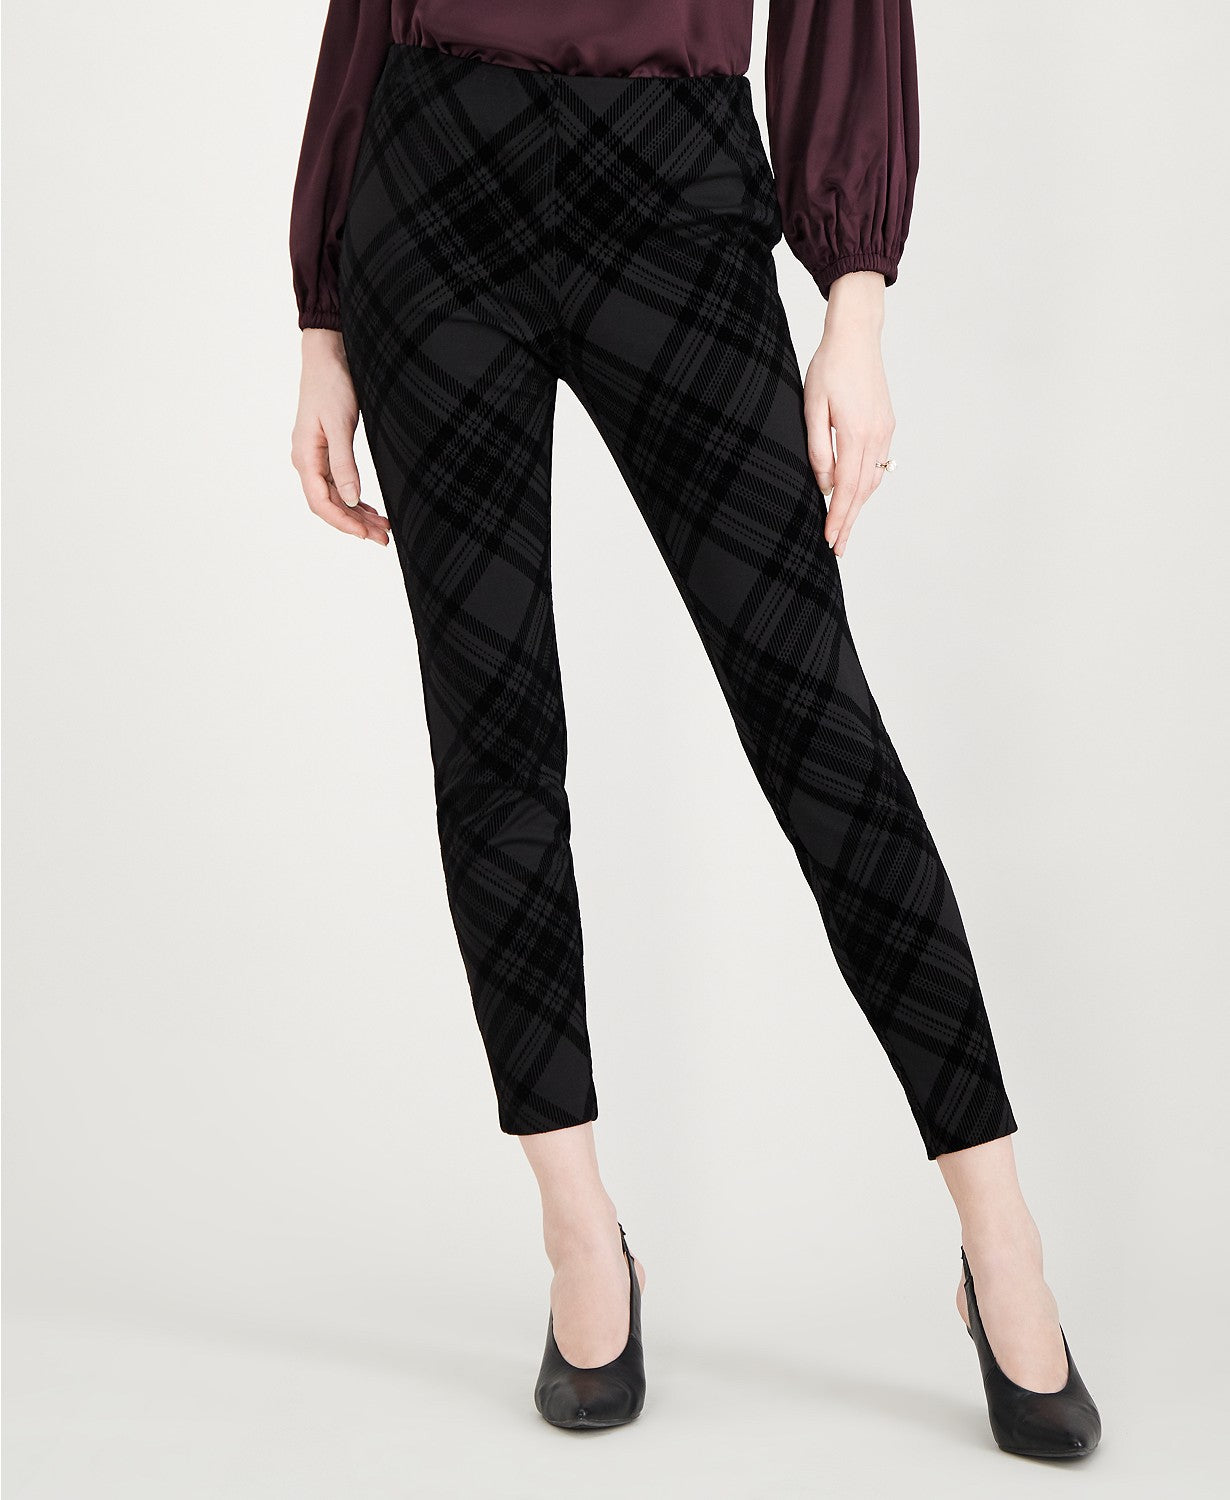 Maison Jules Flocked Plaid Pants Flocked Plaid Black